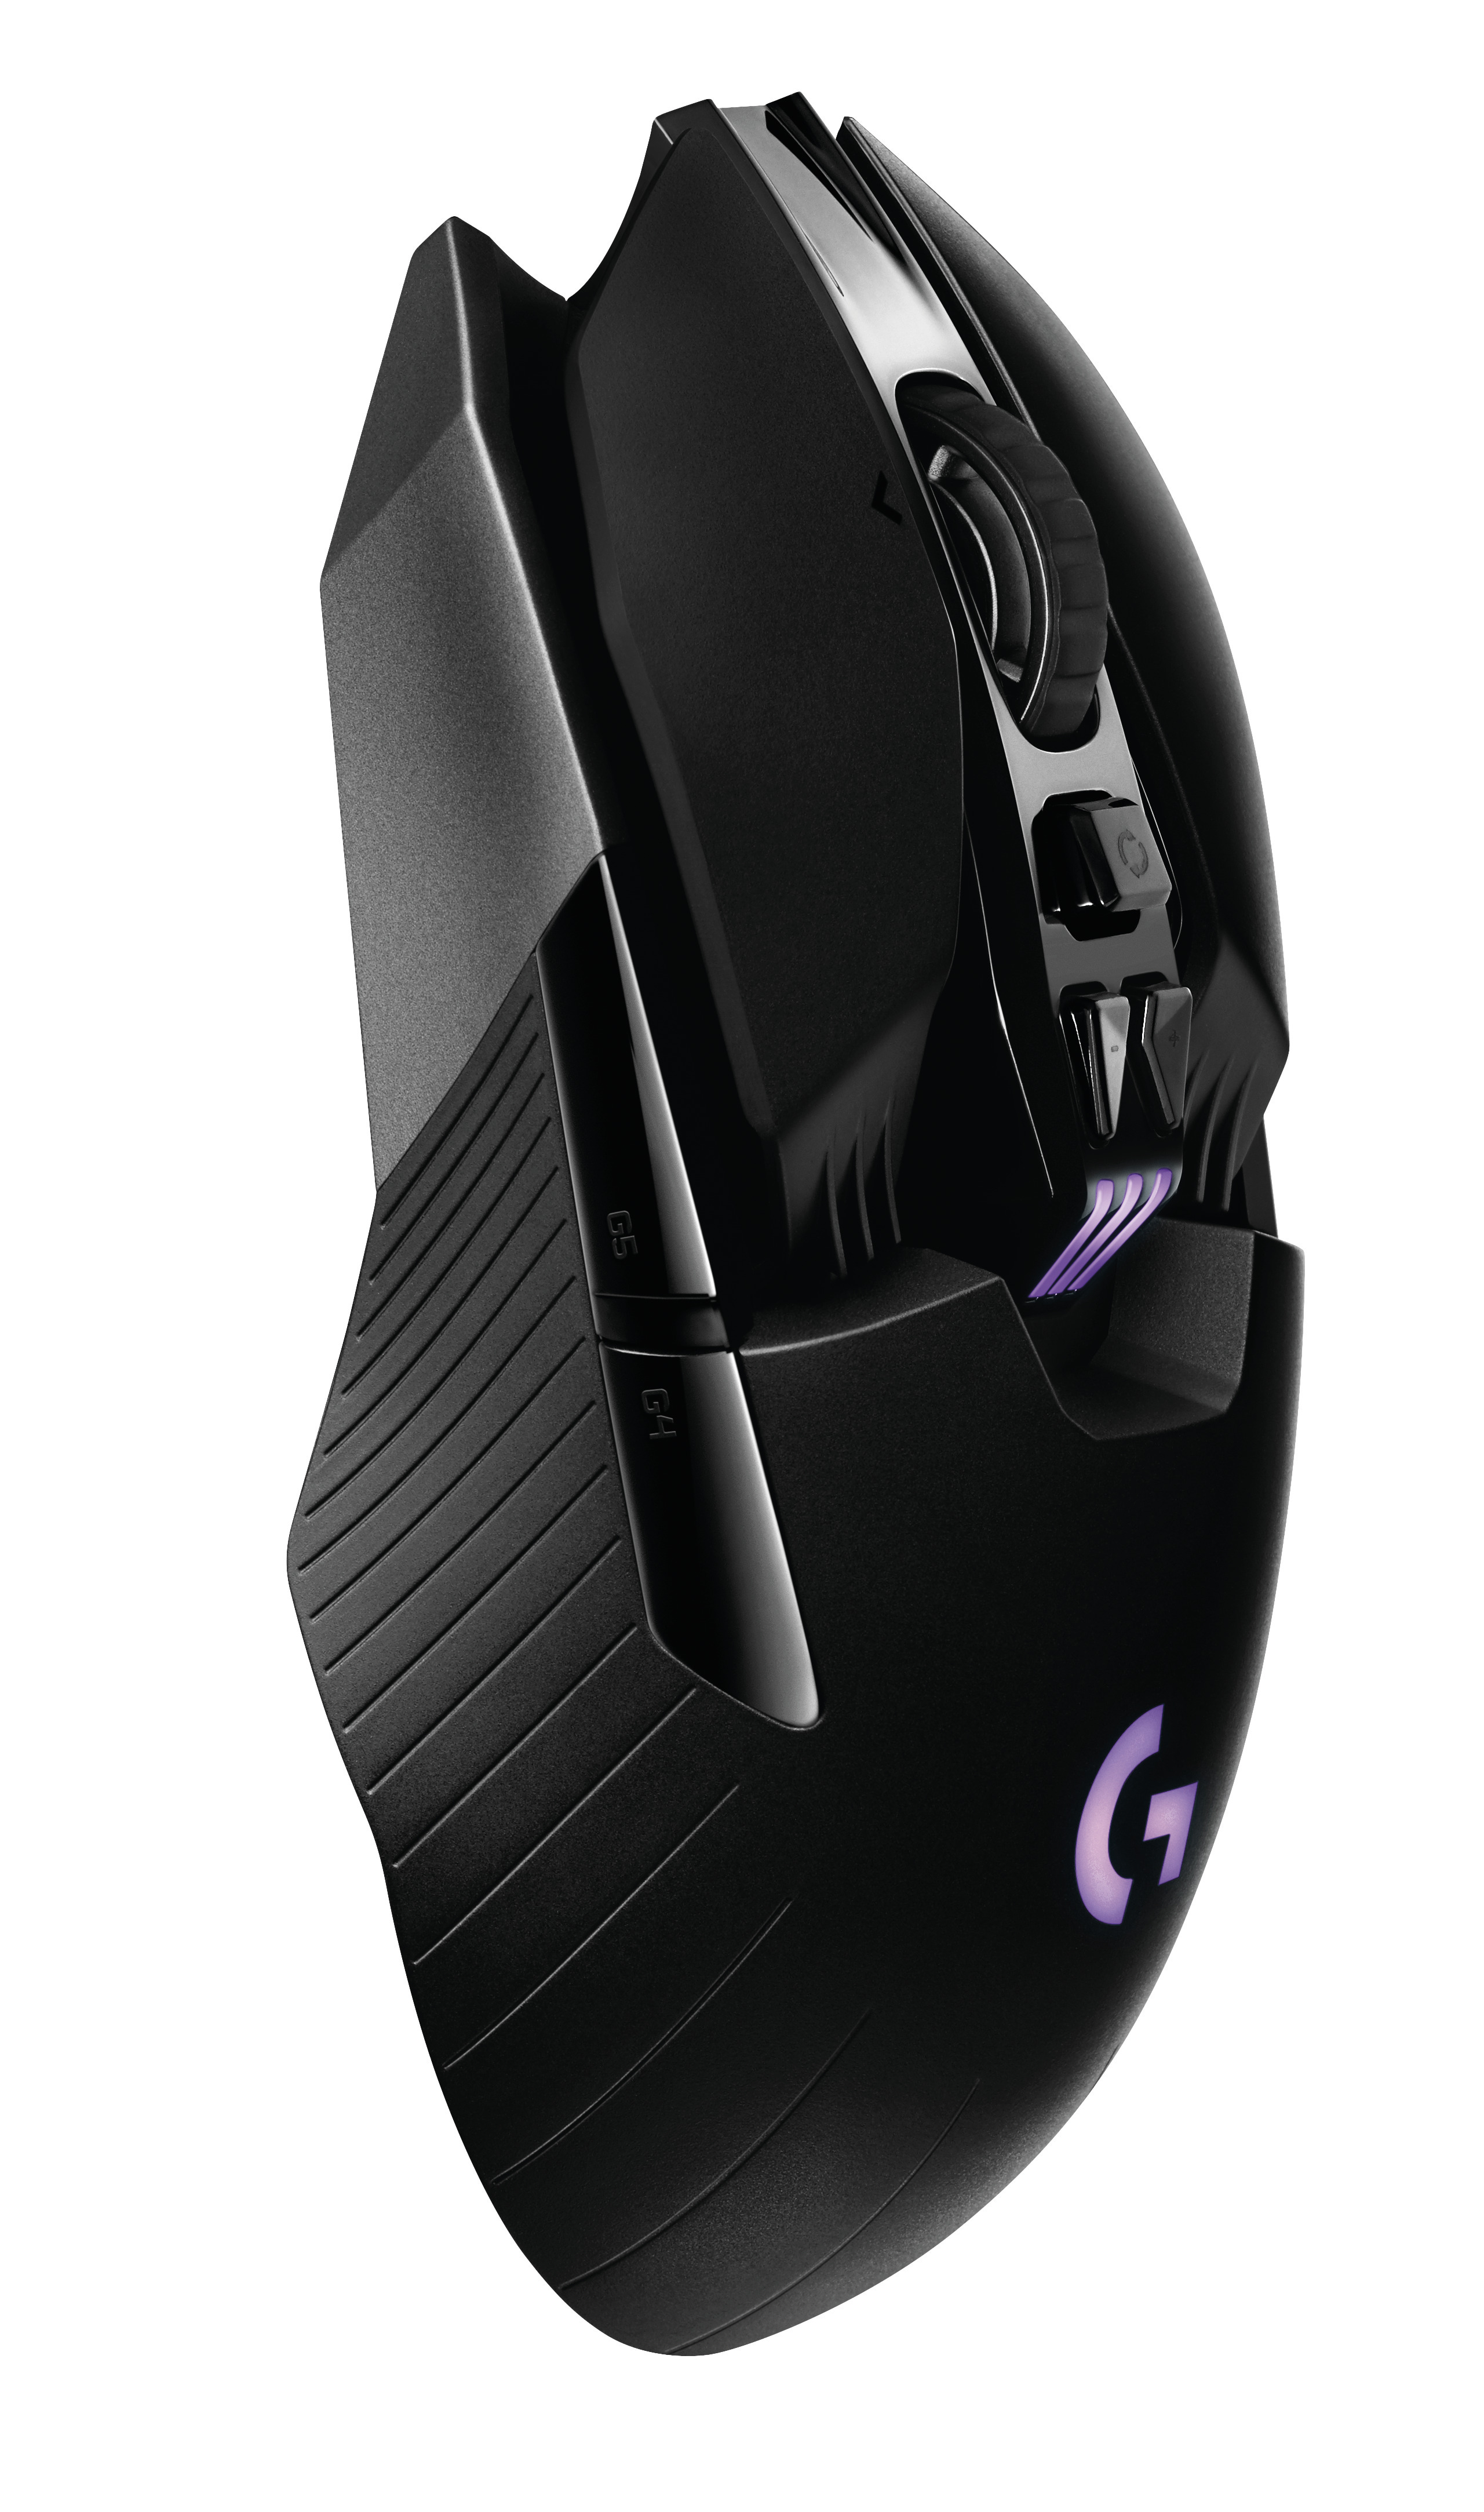 Logitech G900 Chaos Spectrum wireless gaming mouse outperforms wired mice